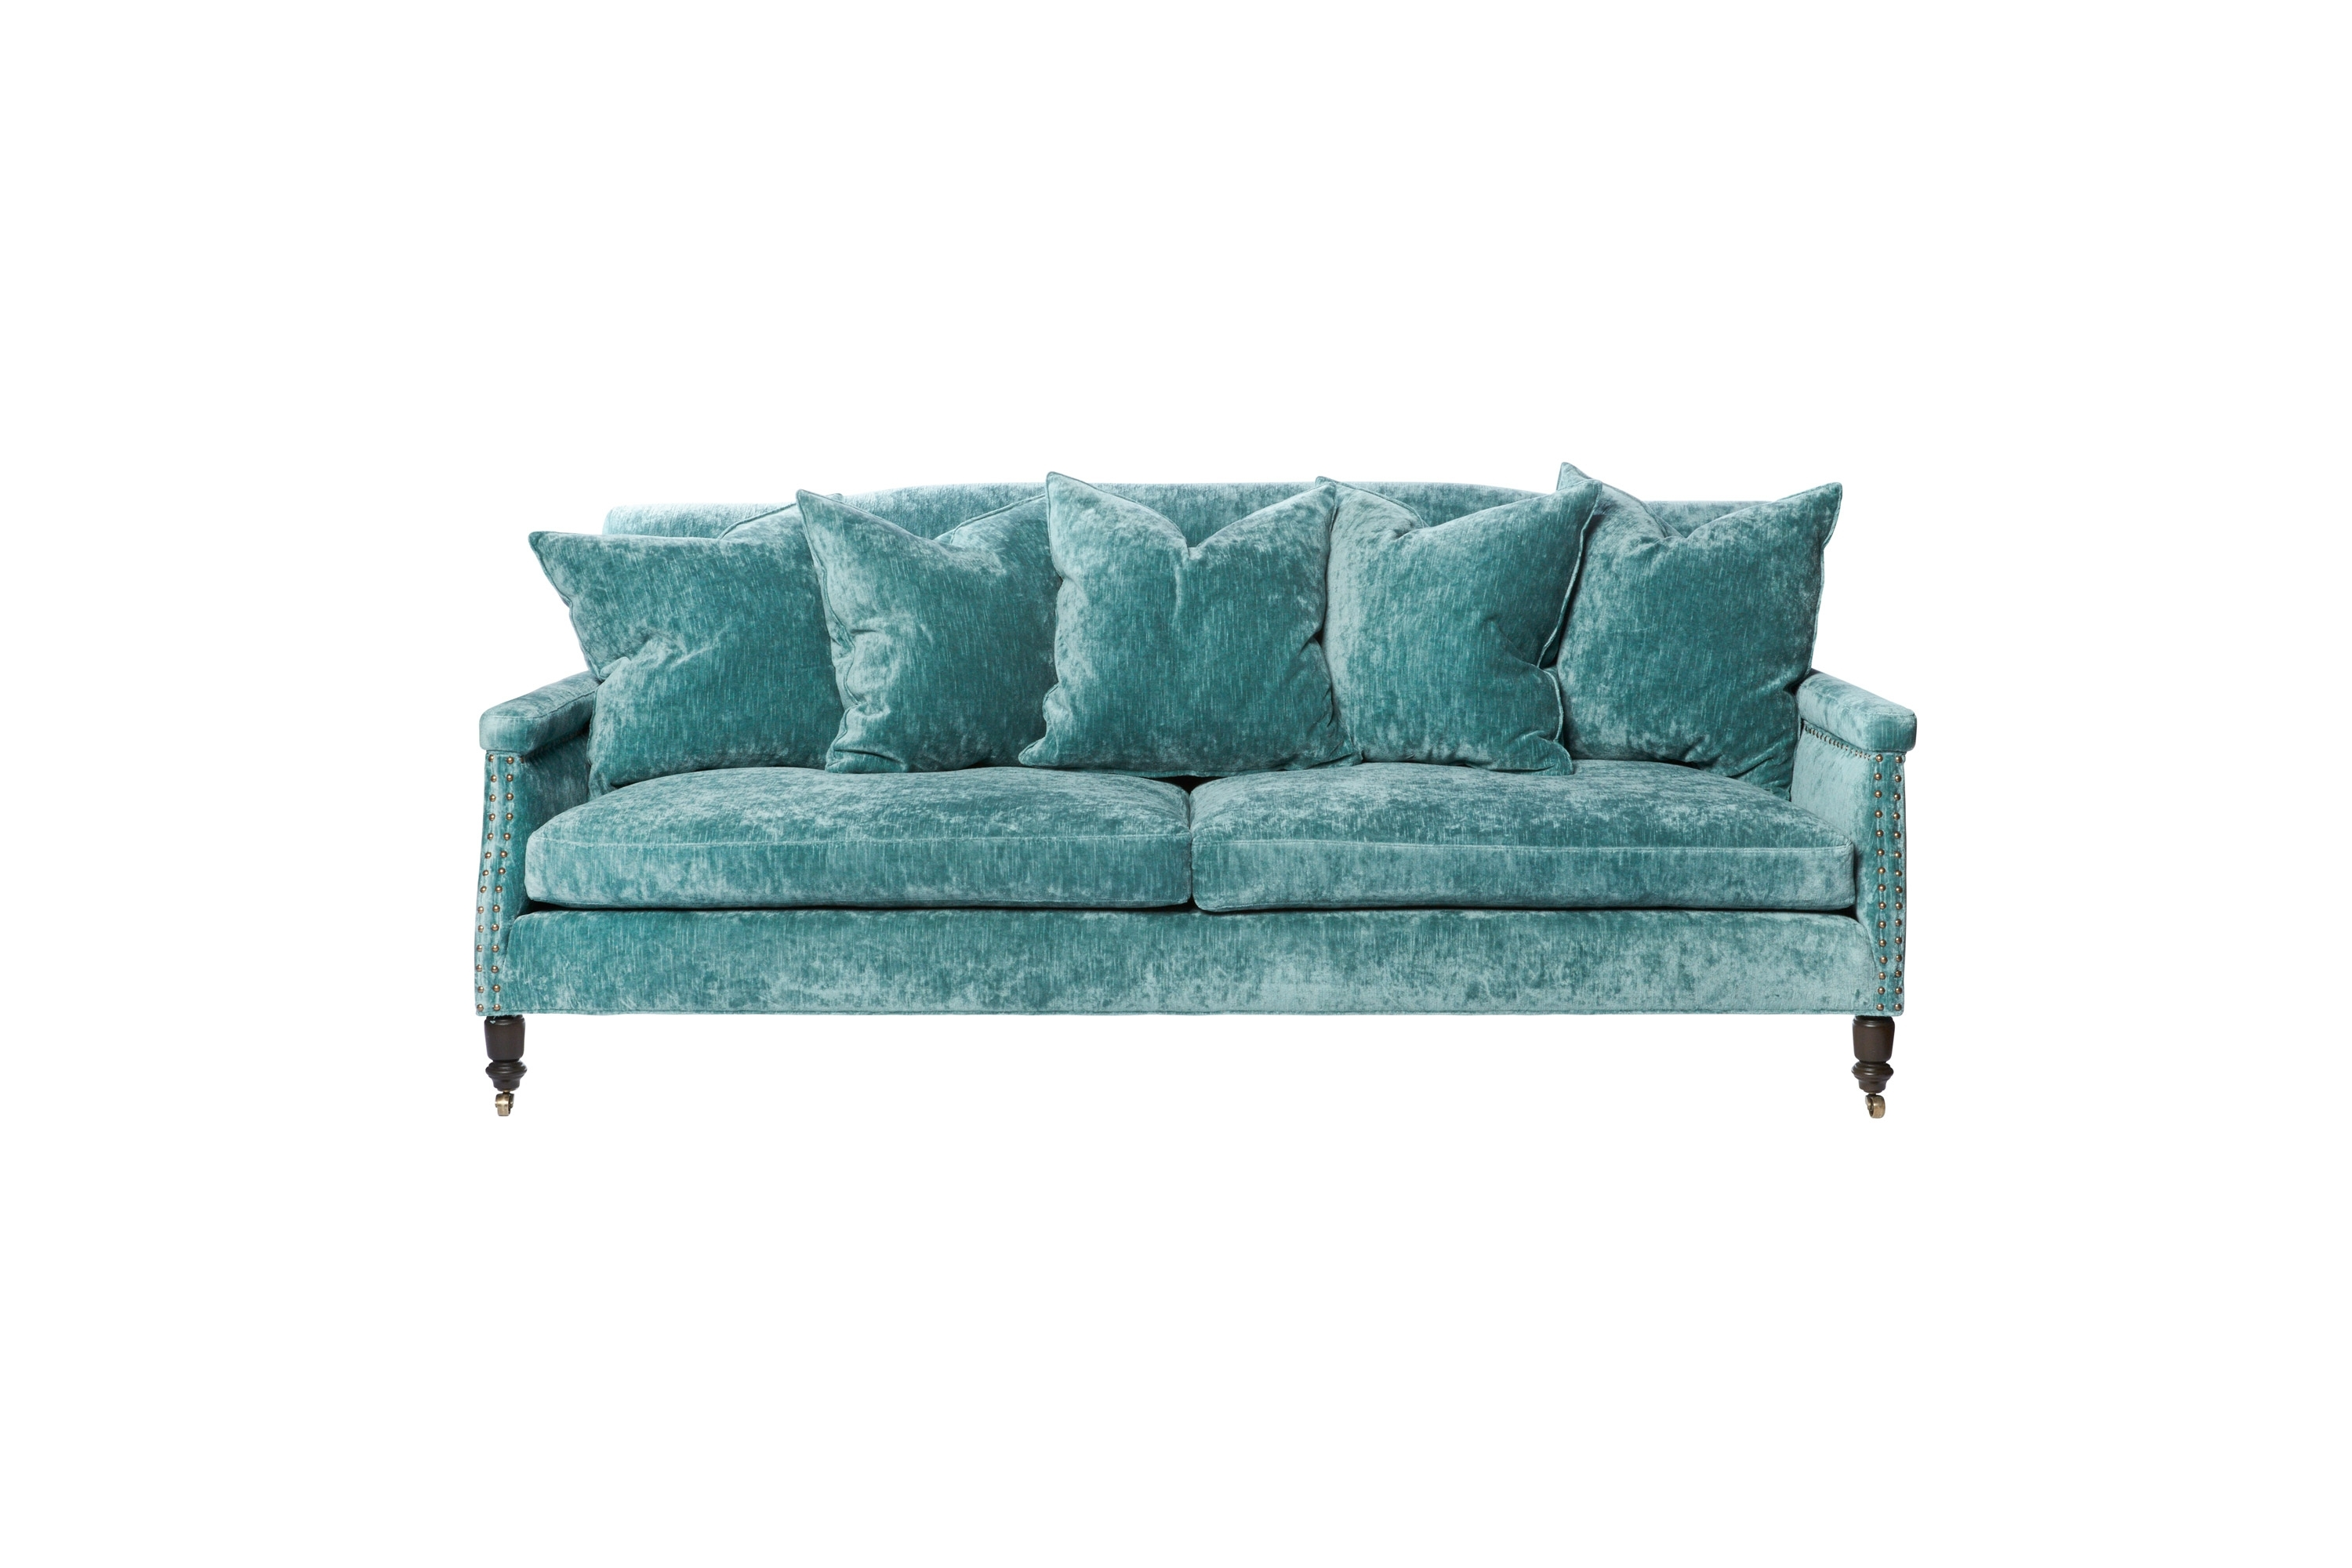 Sofa Pertaining To Aqua Sofas (Image 9 of 10)